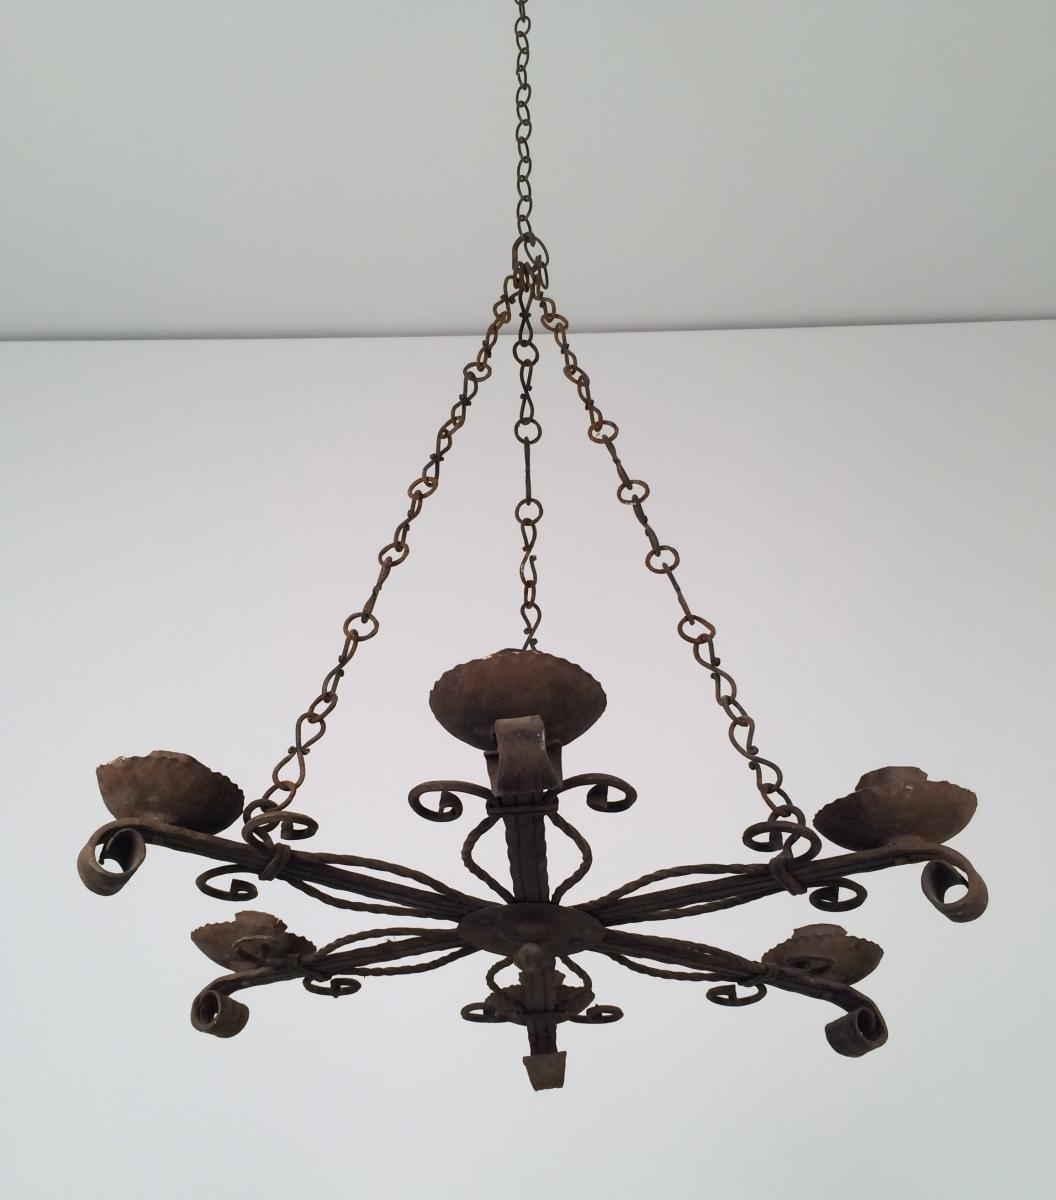 Wrought Iron Chandelier With 5 Candle Holders, 1920S For Sale At Pamono Pertaining To Famous Wrought Iron Chandeliers (View 10 of 15)